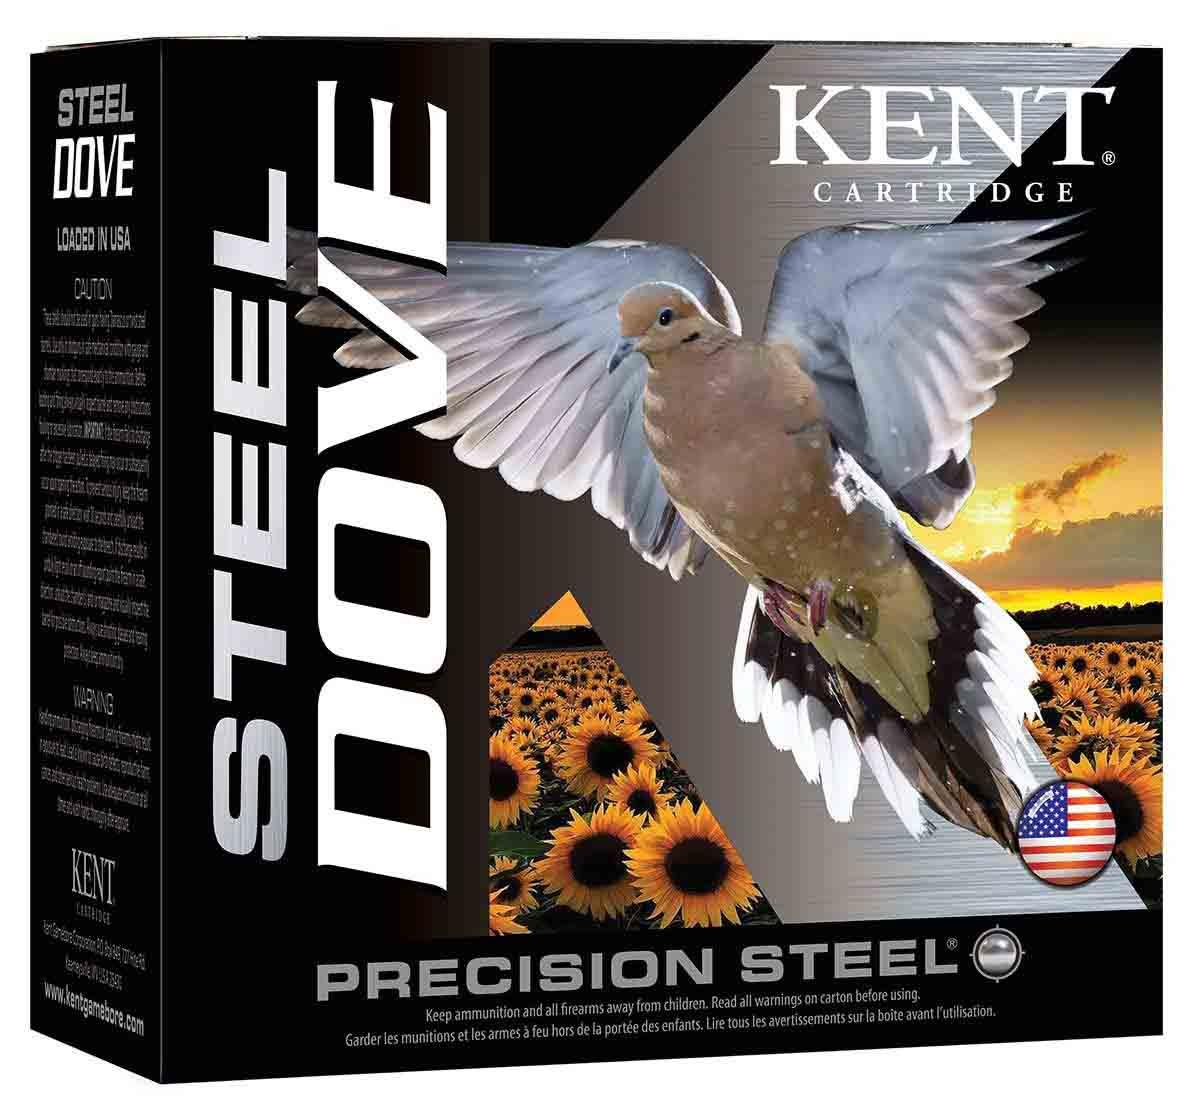 "Kent Steel Dove Precision Steel Shotshell, 20GA 2 3/4"" 7/8oz 1400FPS_1.jpg"